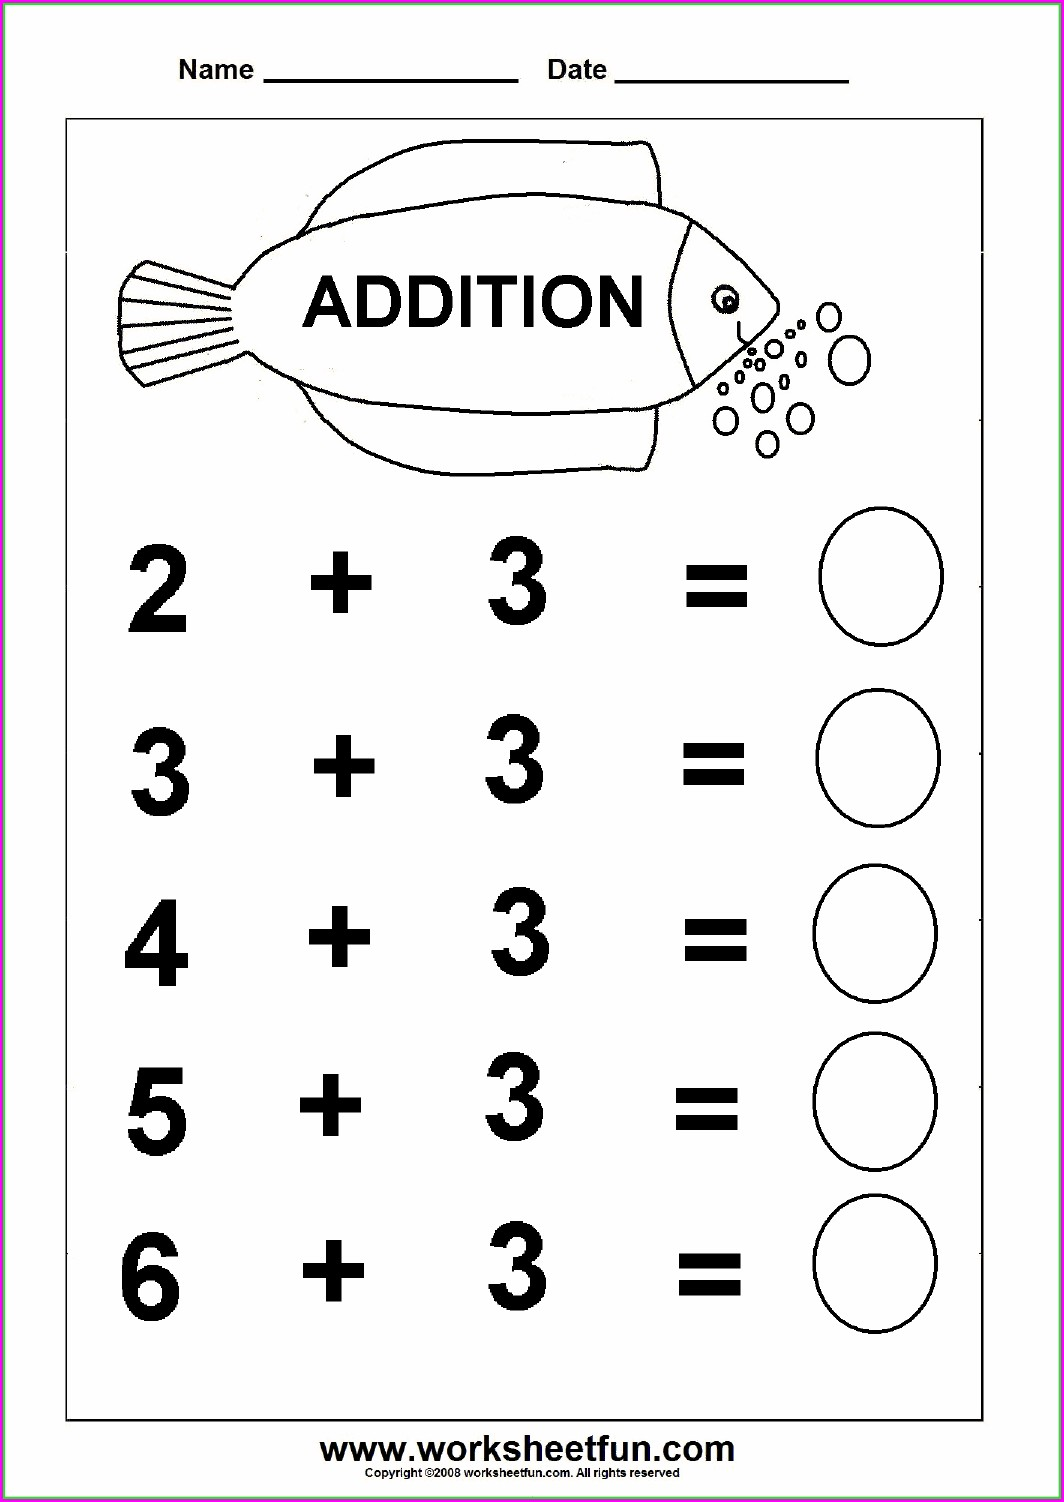 Addition Math Worksheets For Preschoolers